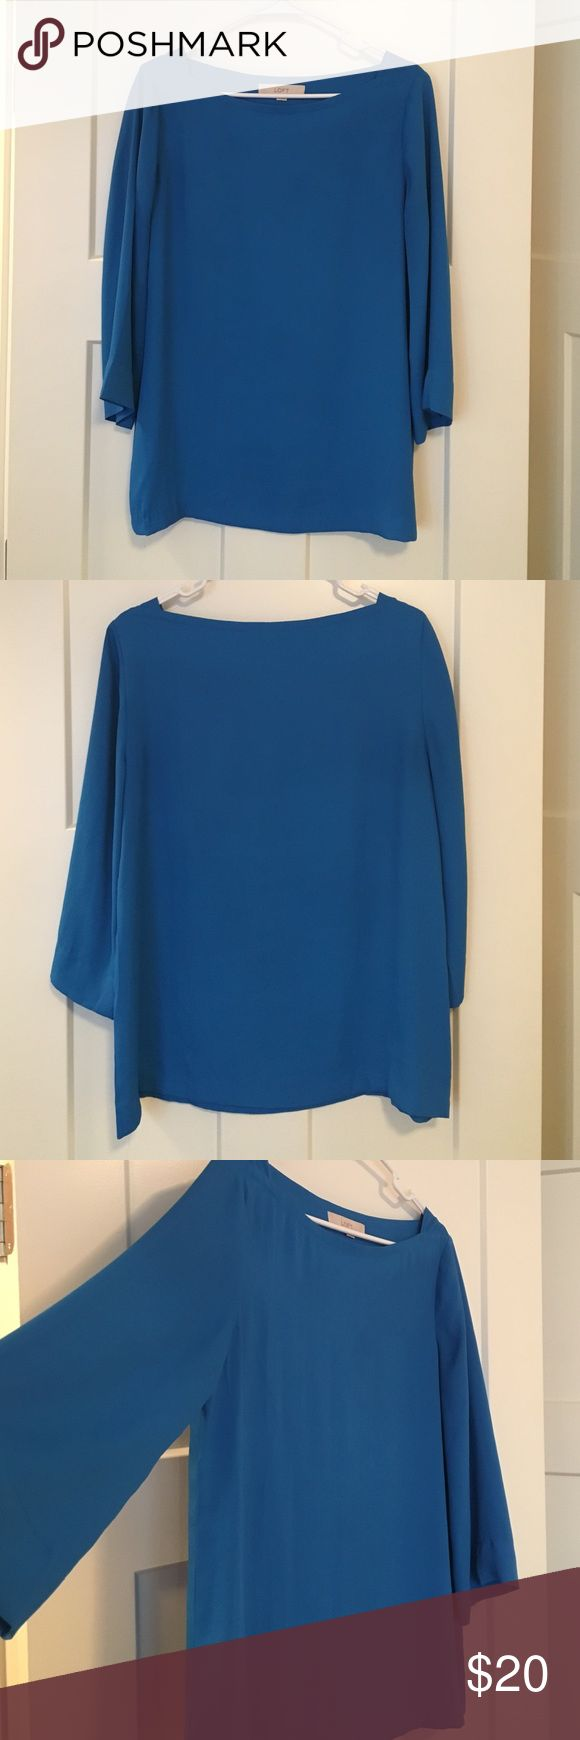 Ann Taylor Blouse Blue, 3/4 sleeved, chiffon blouse. Perfect for the office, football games or date night! Ann Taylor Tops Blouses